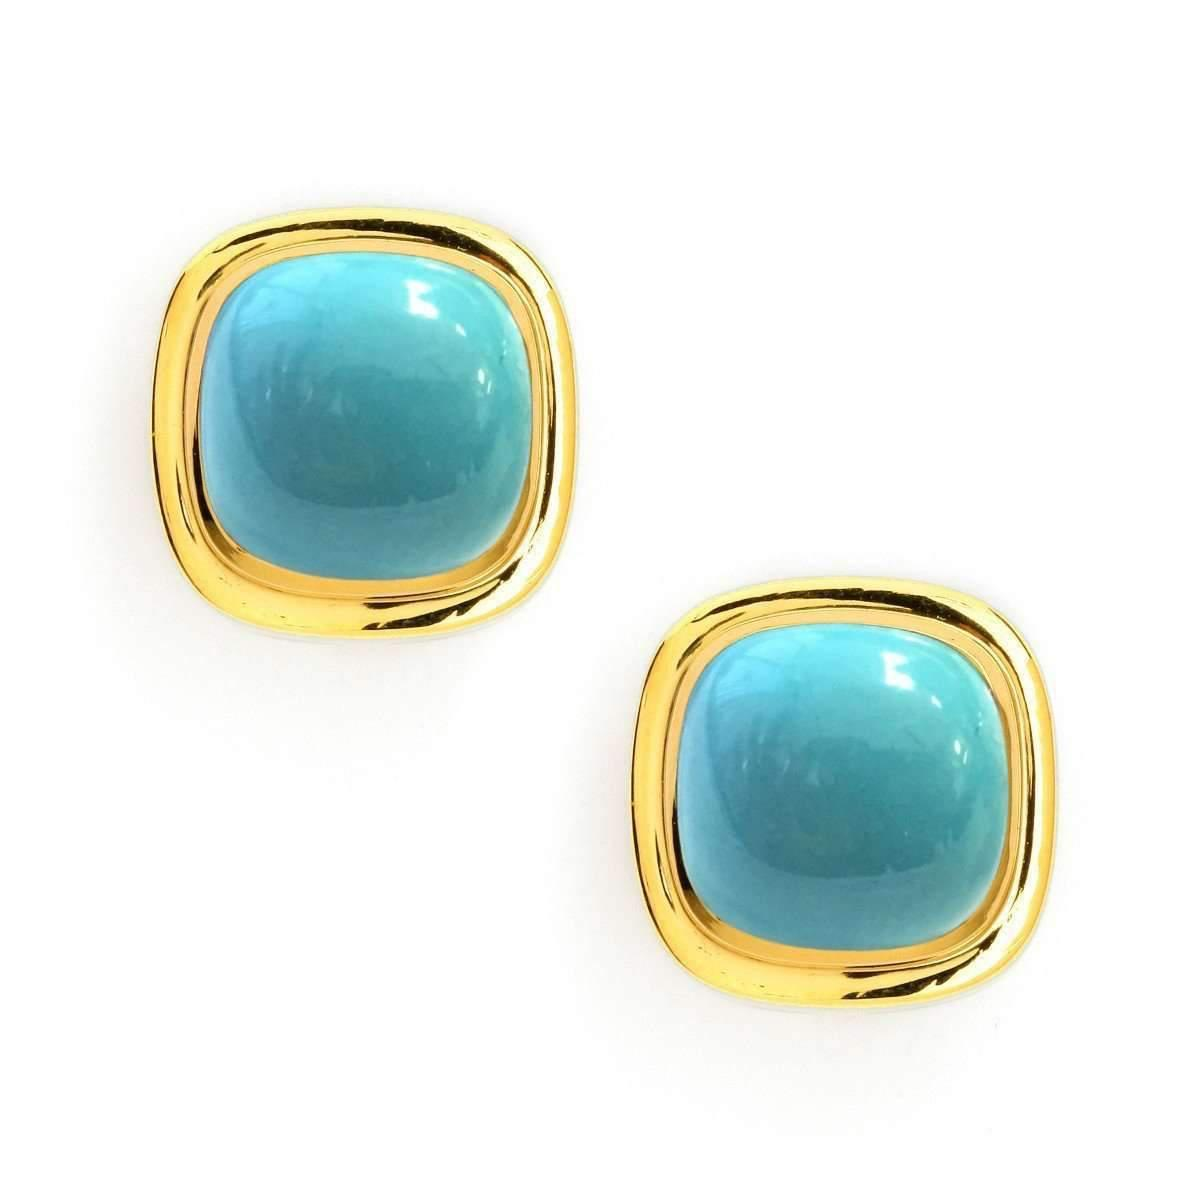 Syna 18kt Turquoise Sugarloaf Earrings 2yAvmpOt